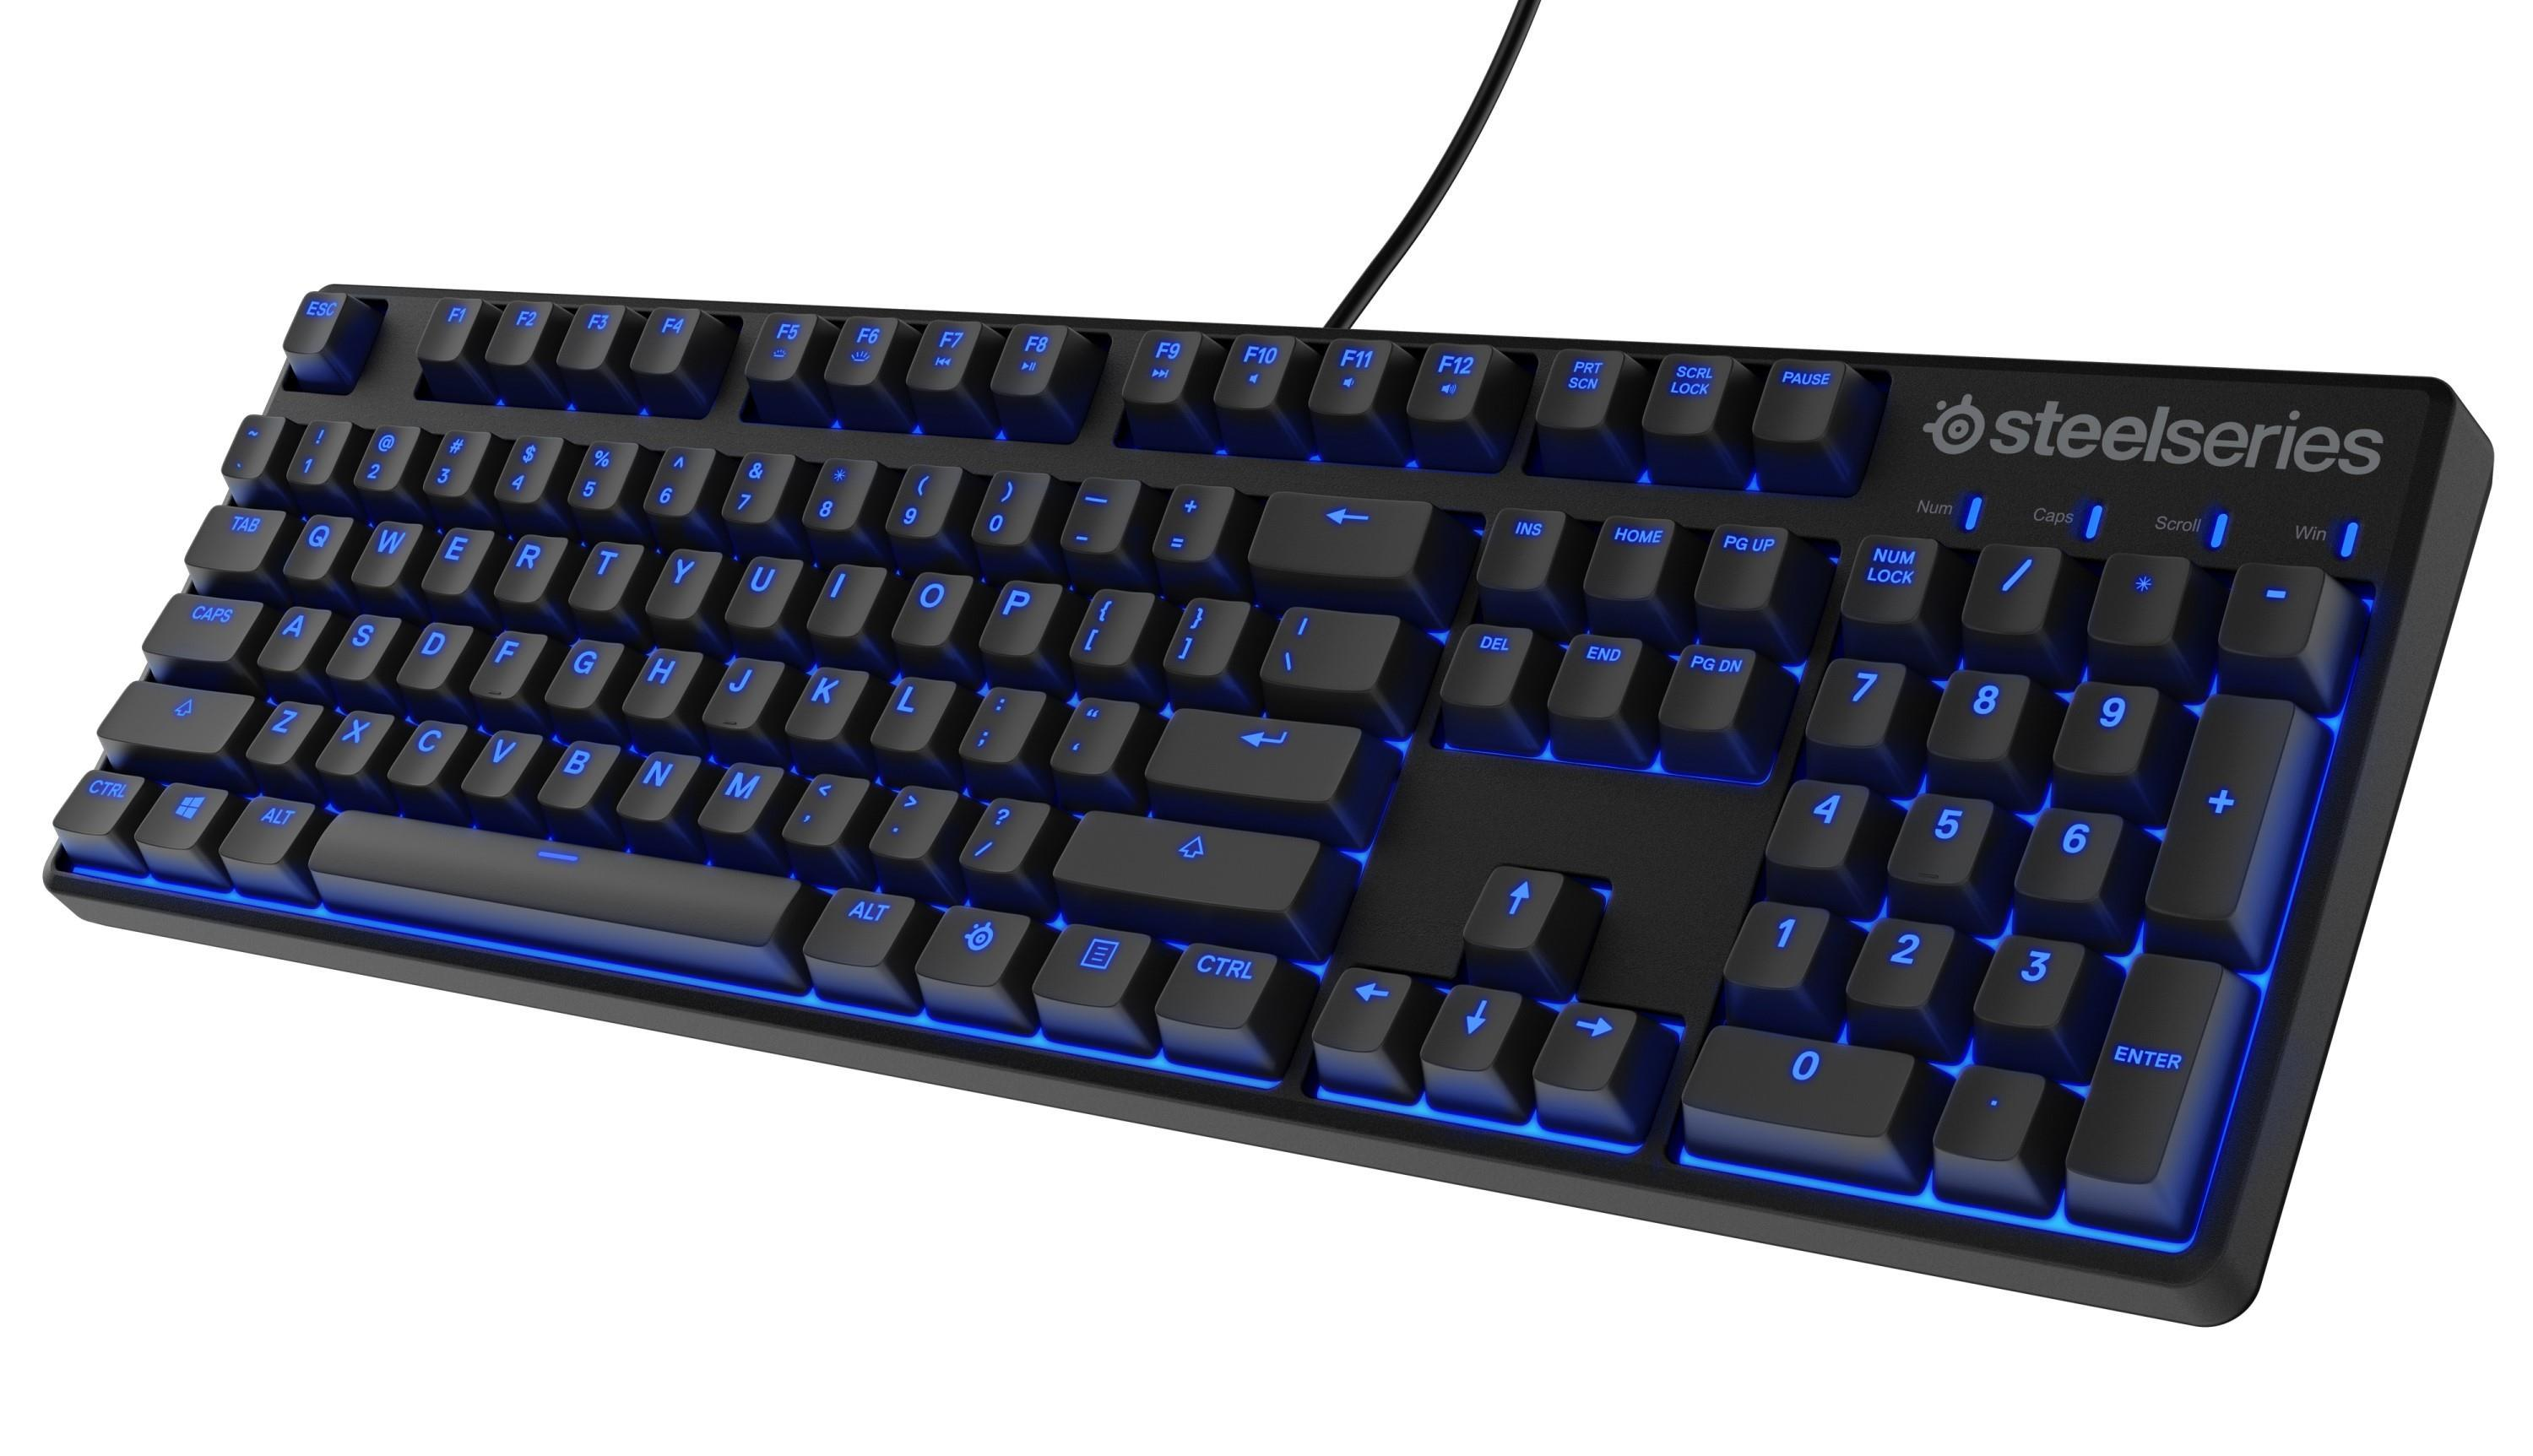 NEW!! SteelSeries Apex M500 Cherry MX Red Mechanical Gaming Keyboard